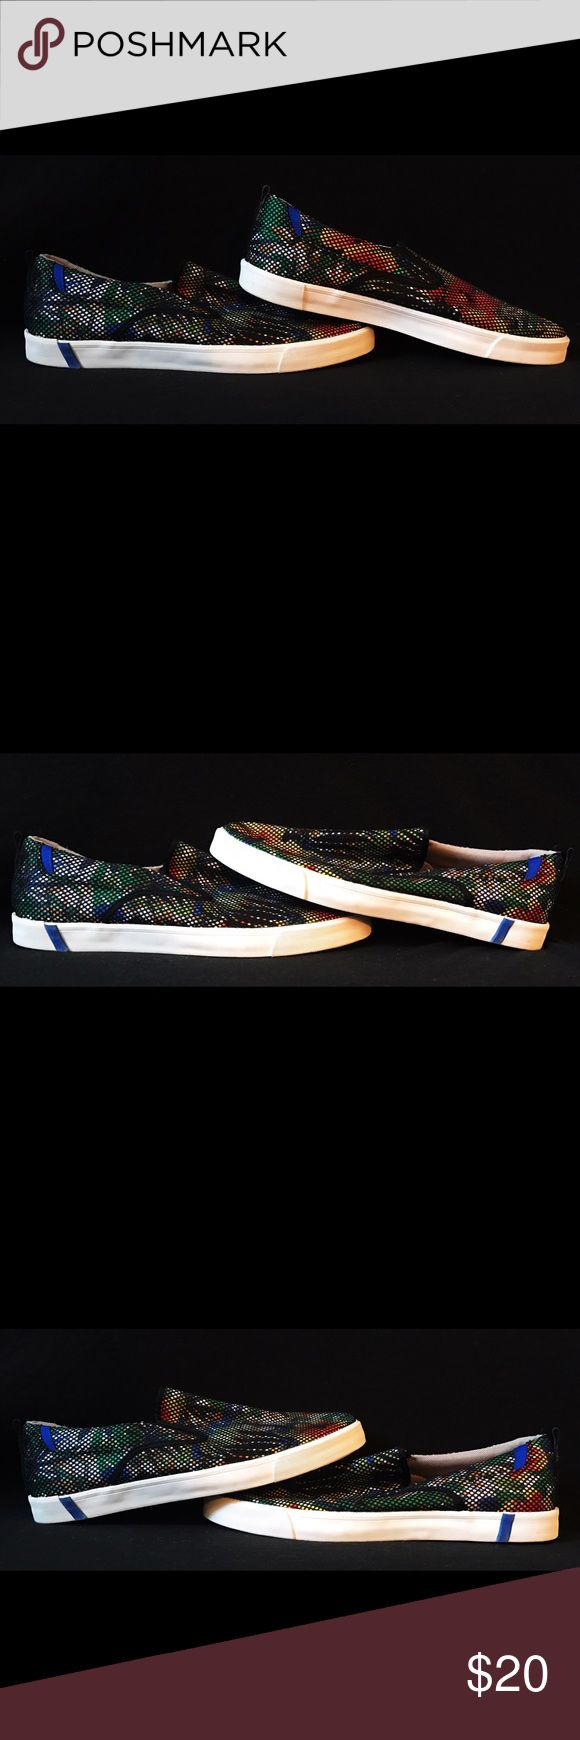 ZARA FLORAL SLIP ONS NWOT - Zara Man Floral Slip On Sneakers.             Never been used! Bought them on the Zara app. No box - paper inside to preserve shape. Zara Shoes Loafers & Slip-Ons